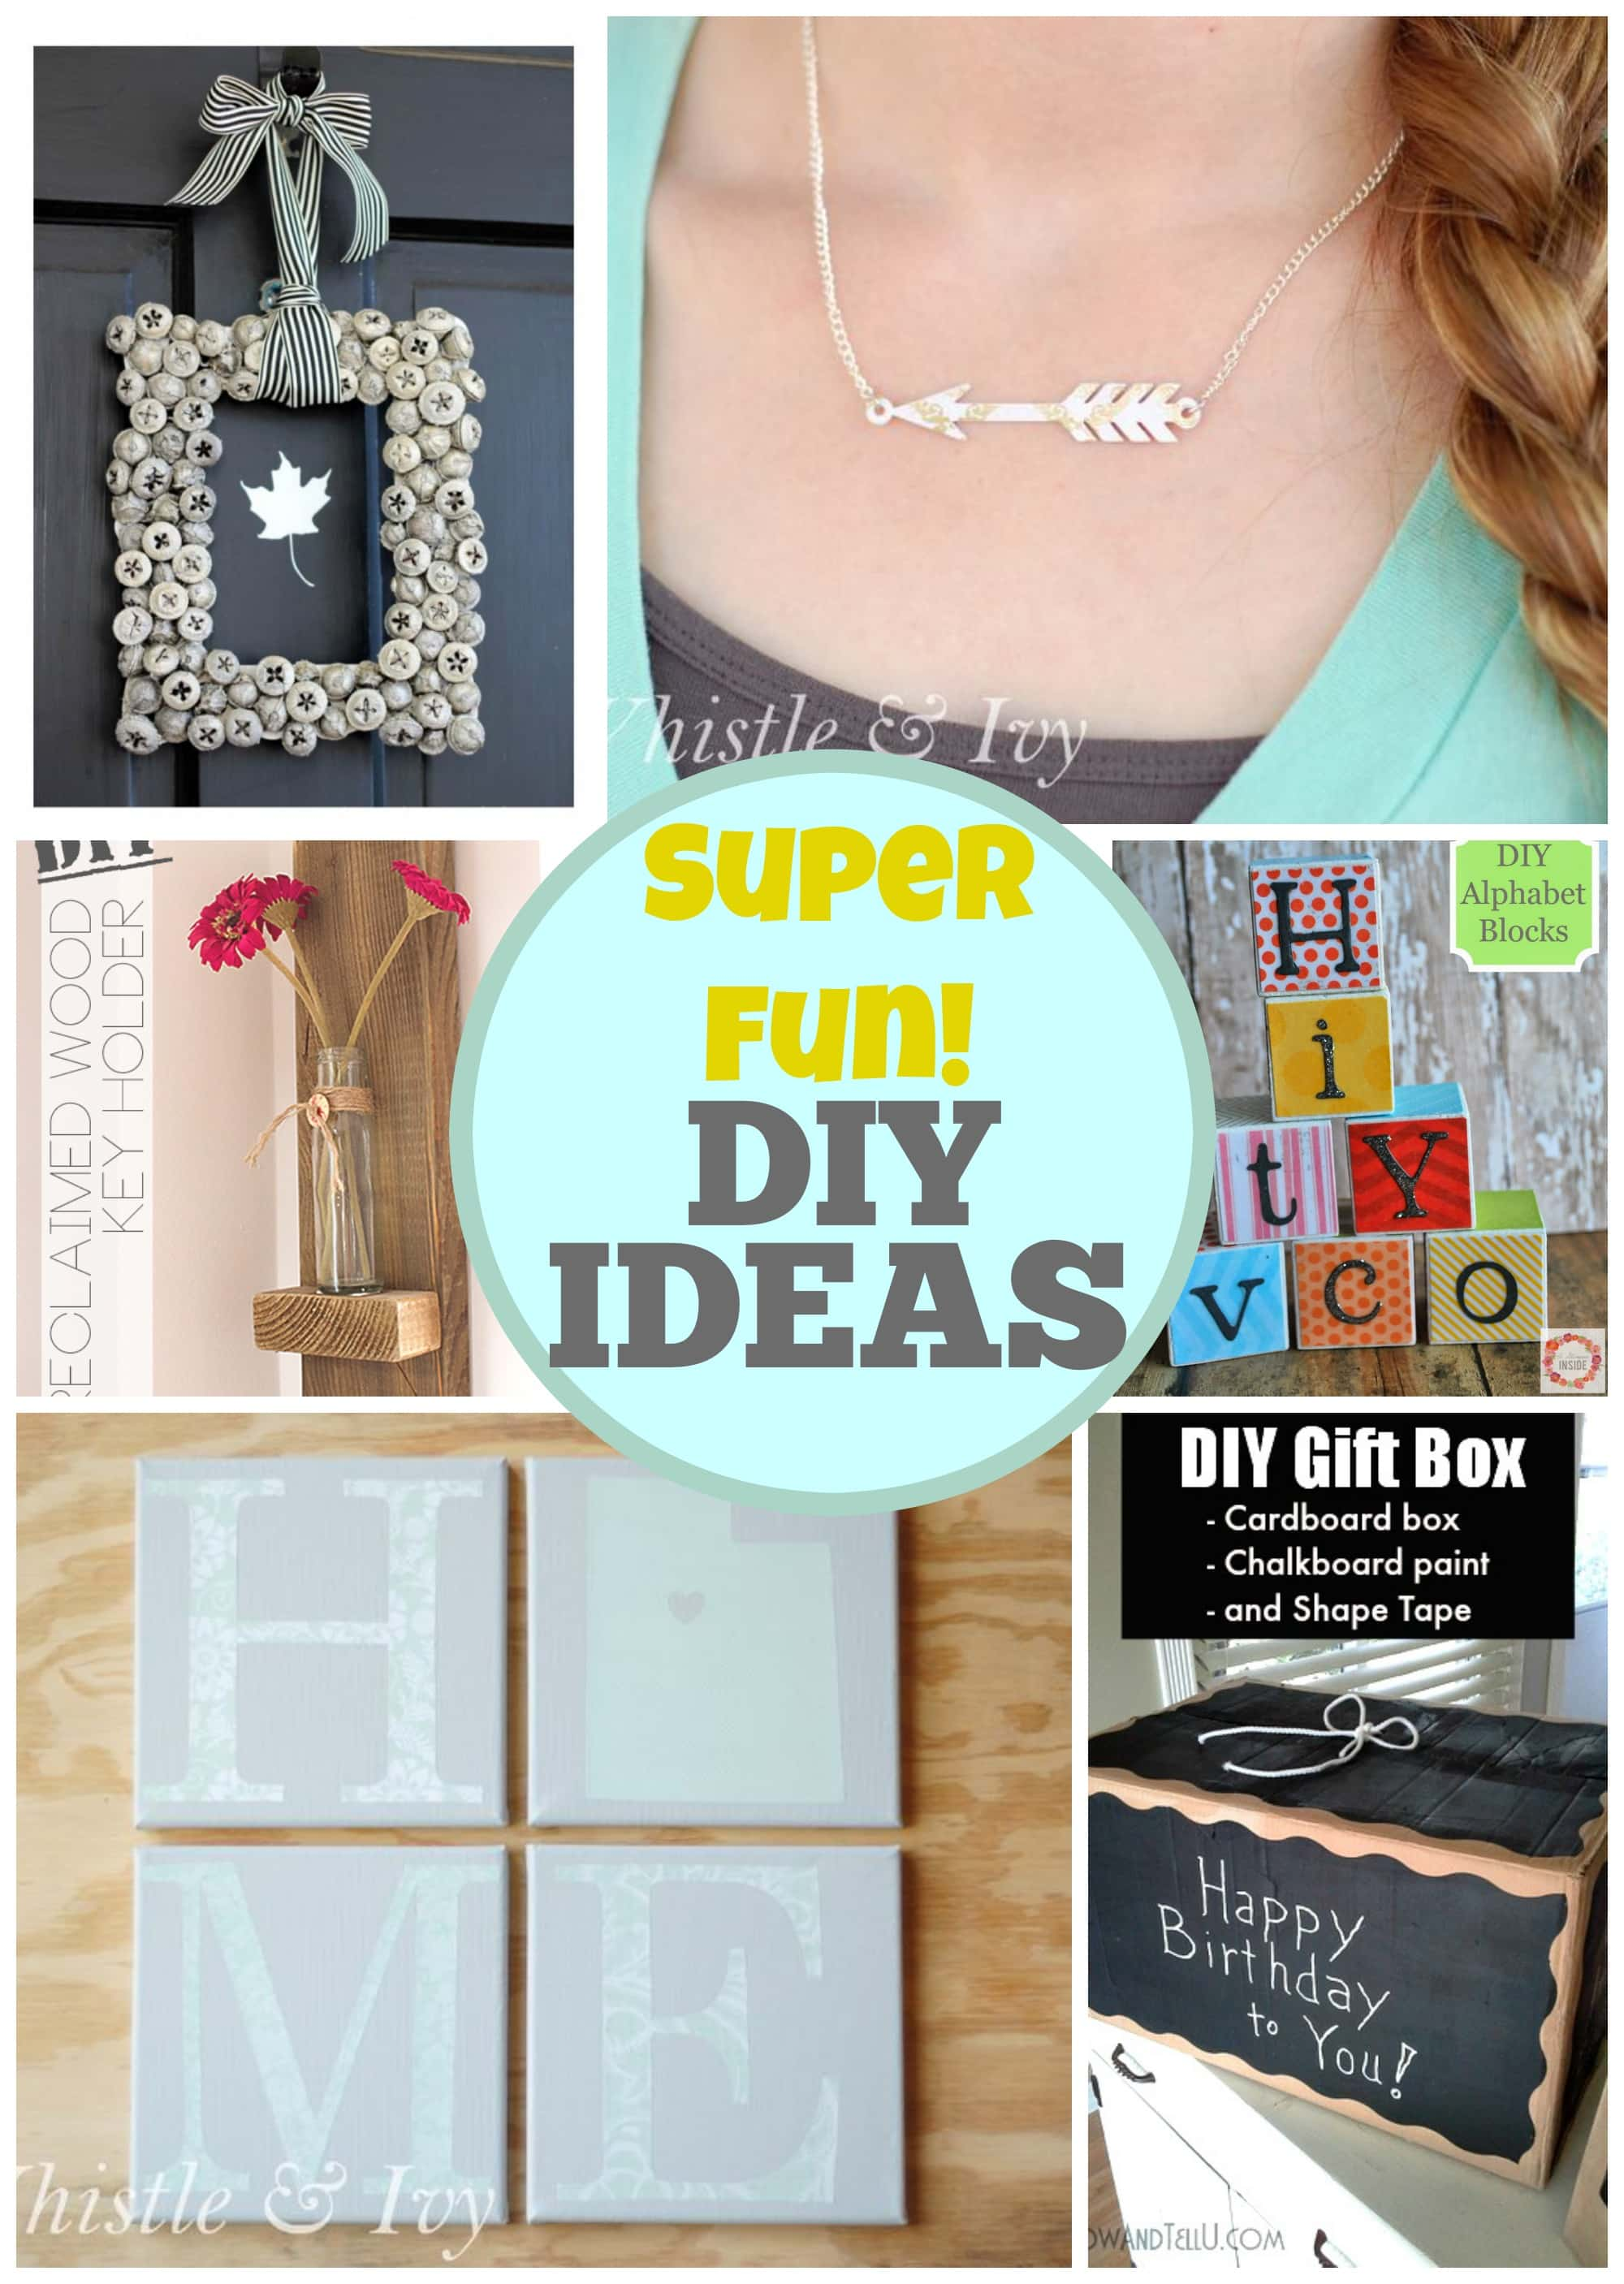 15 Super Fun DIY Ideas via PinkWhen.com